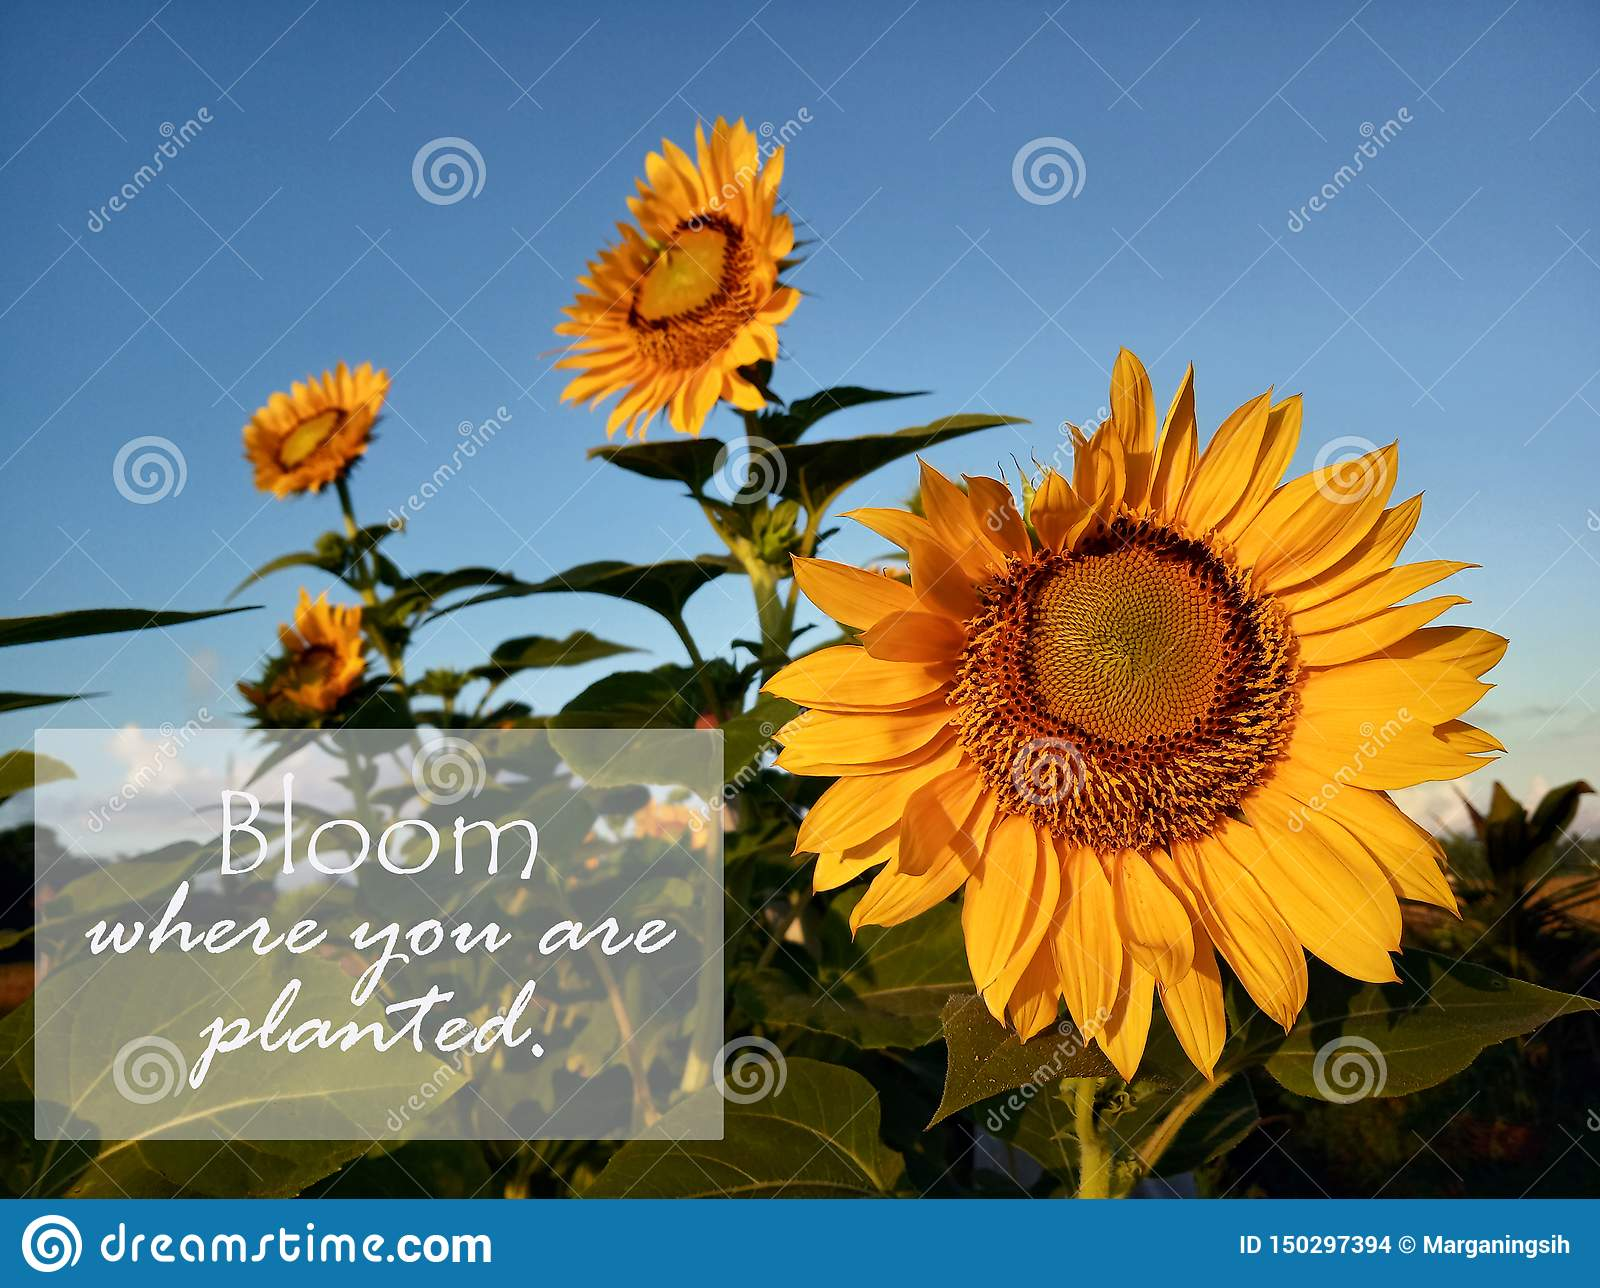 Bloom Where Youre Planted: Daily Adventures in Self Inspiration